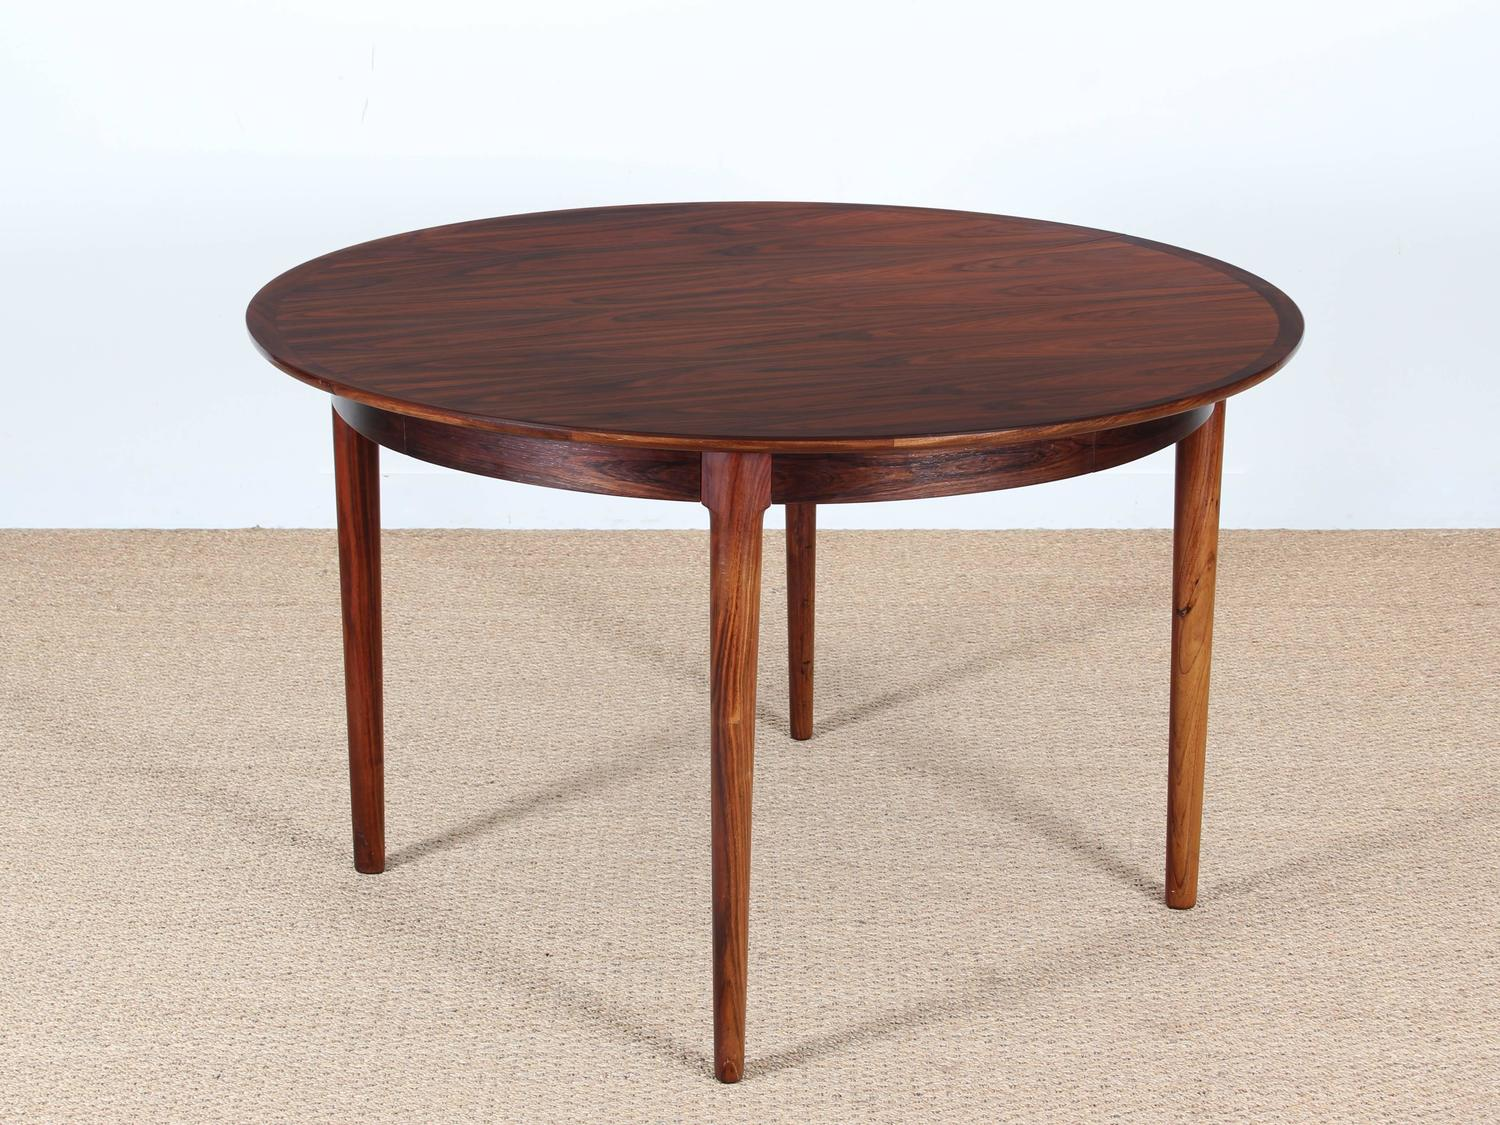 century modern danish extendable round dining table in rio rosewood